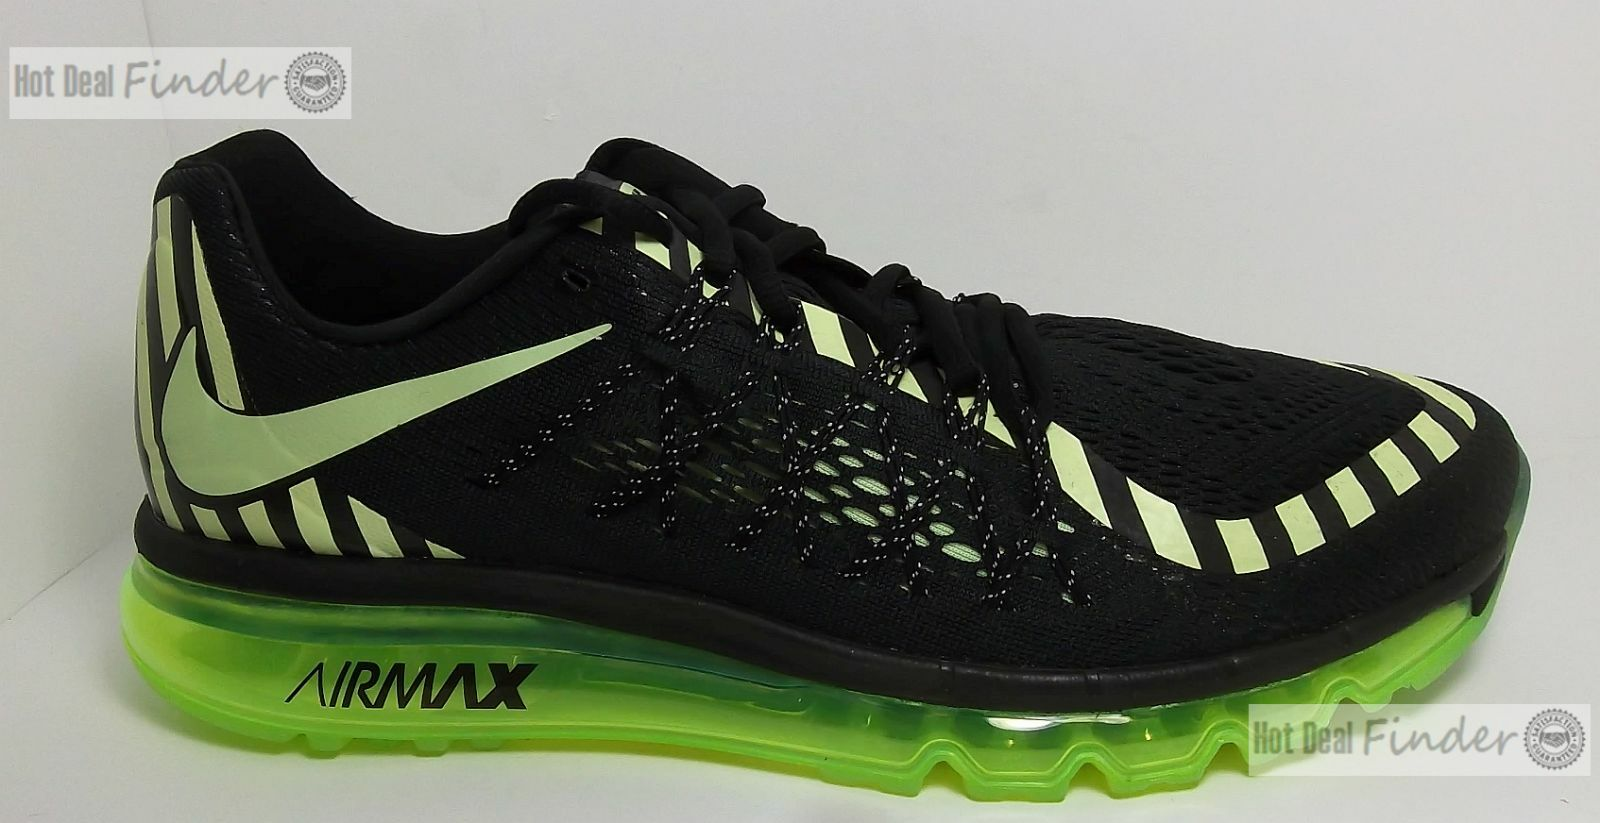 44b510be62 NIKE AIR MAX ANNIVERSARY = SIZE 13 MENS RUNNING SHOES SNEAKERS 746687-014